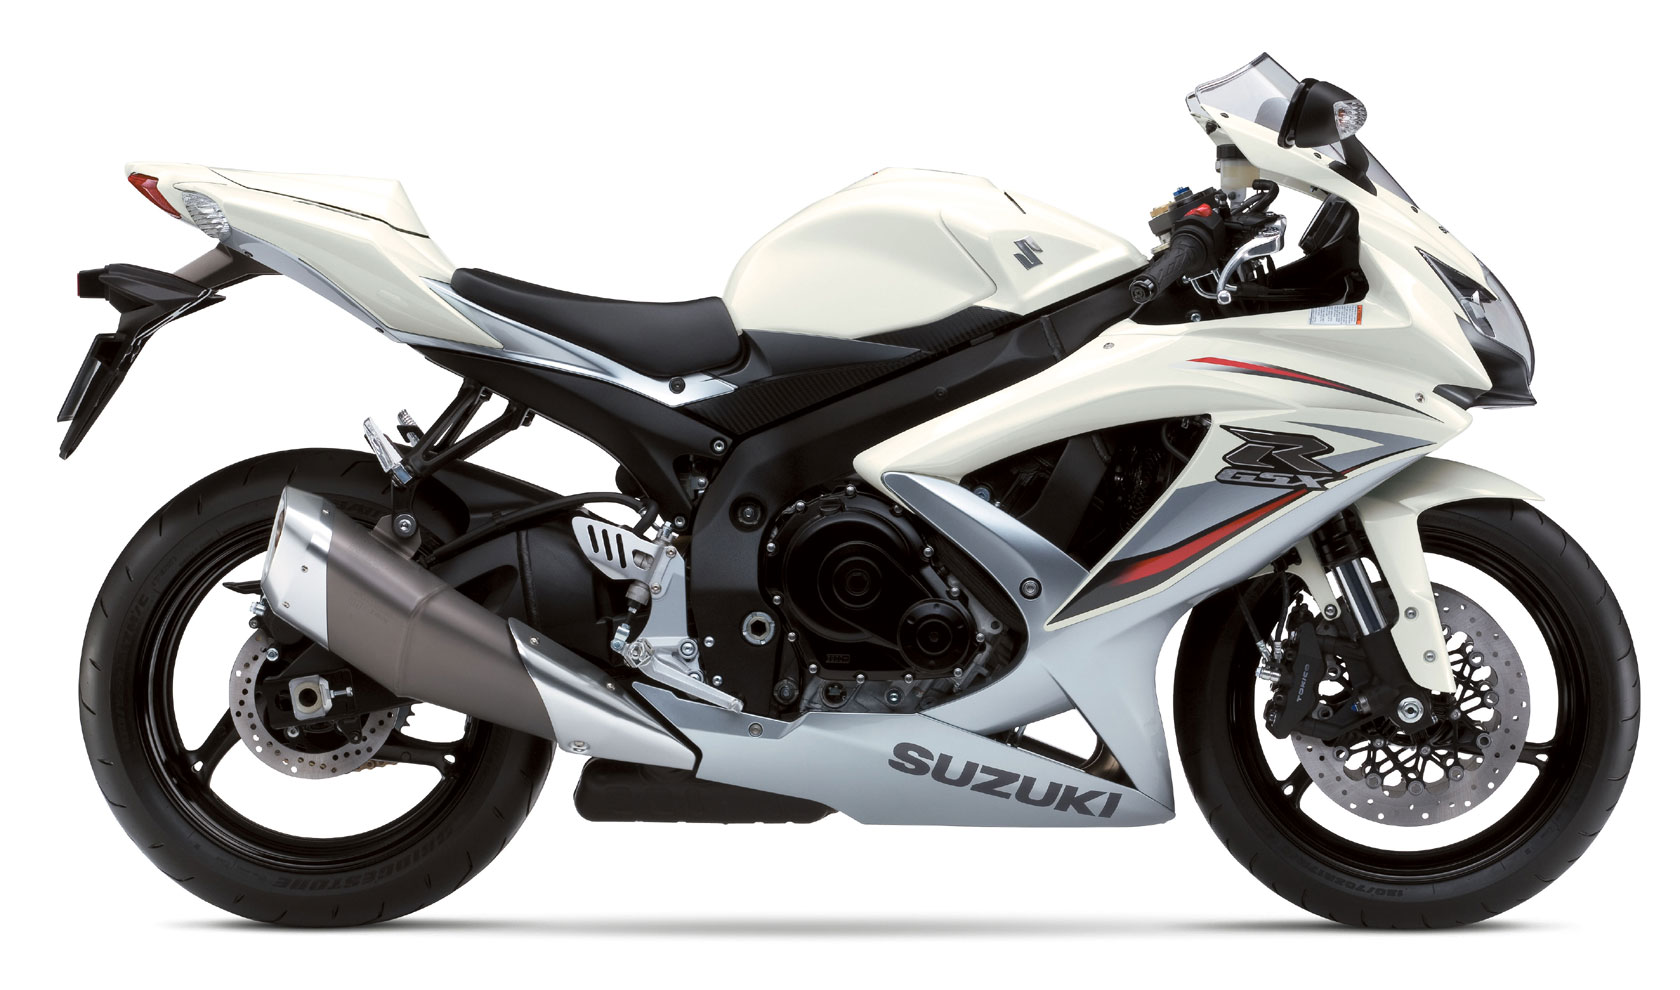 2008 To 2010 8th Generation Suzuki Gsx R750 Multi Mode